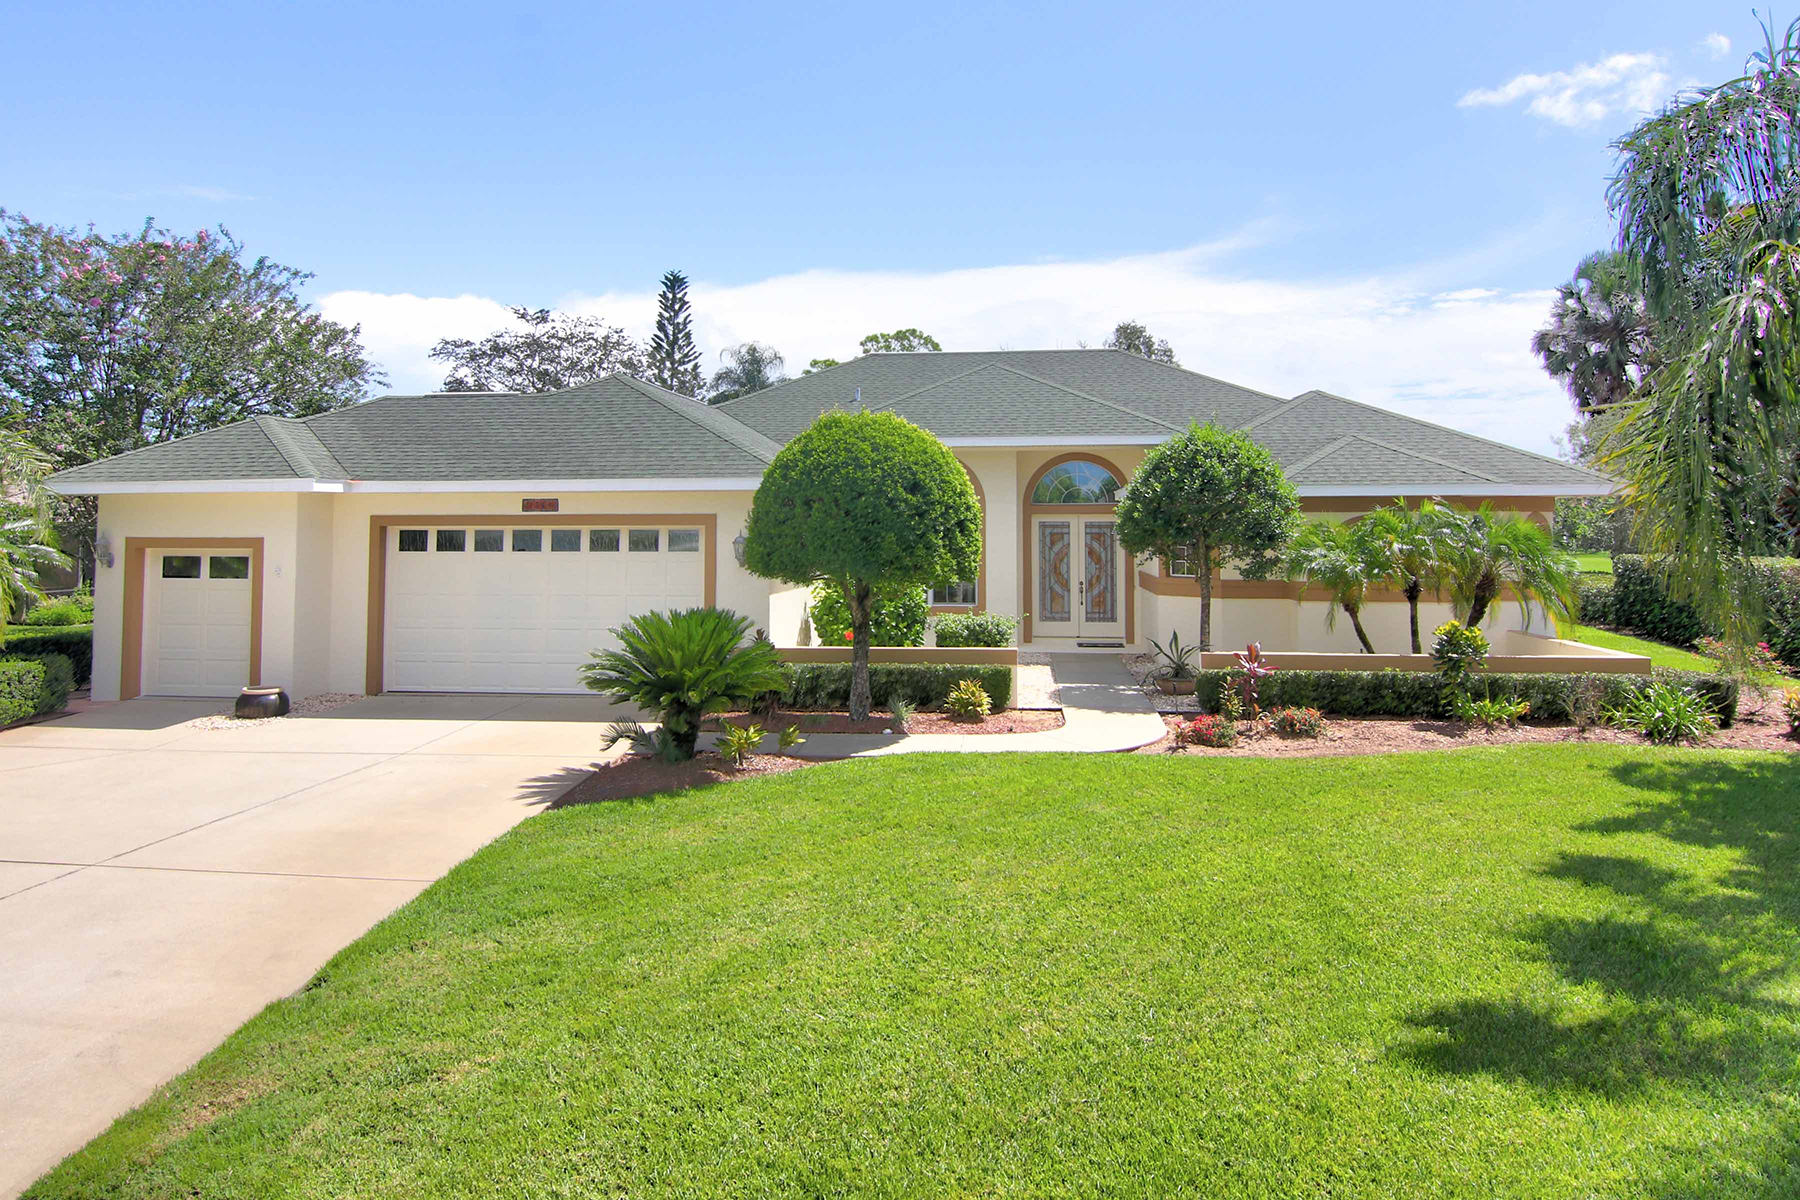 Single Family Home for Sale at 1864 Seclusion Dr , Port Orange, FL 32128 1864 Seclusion Dr Port Orange, Florida 32128 United States